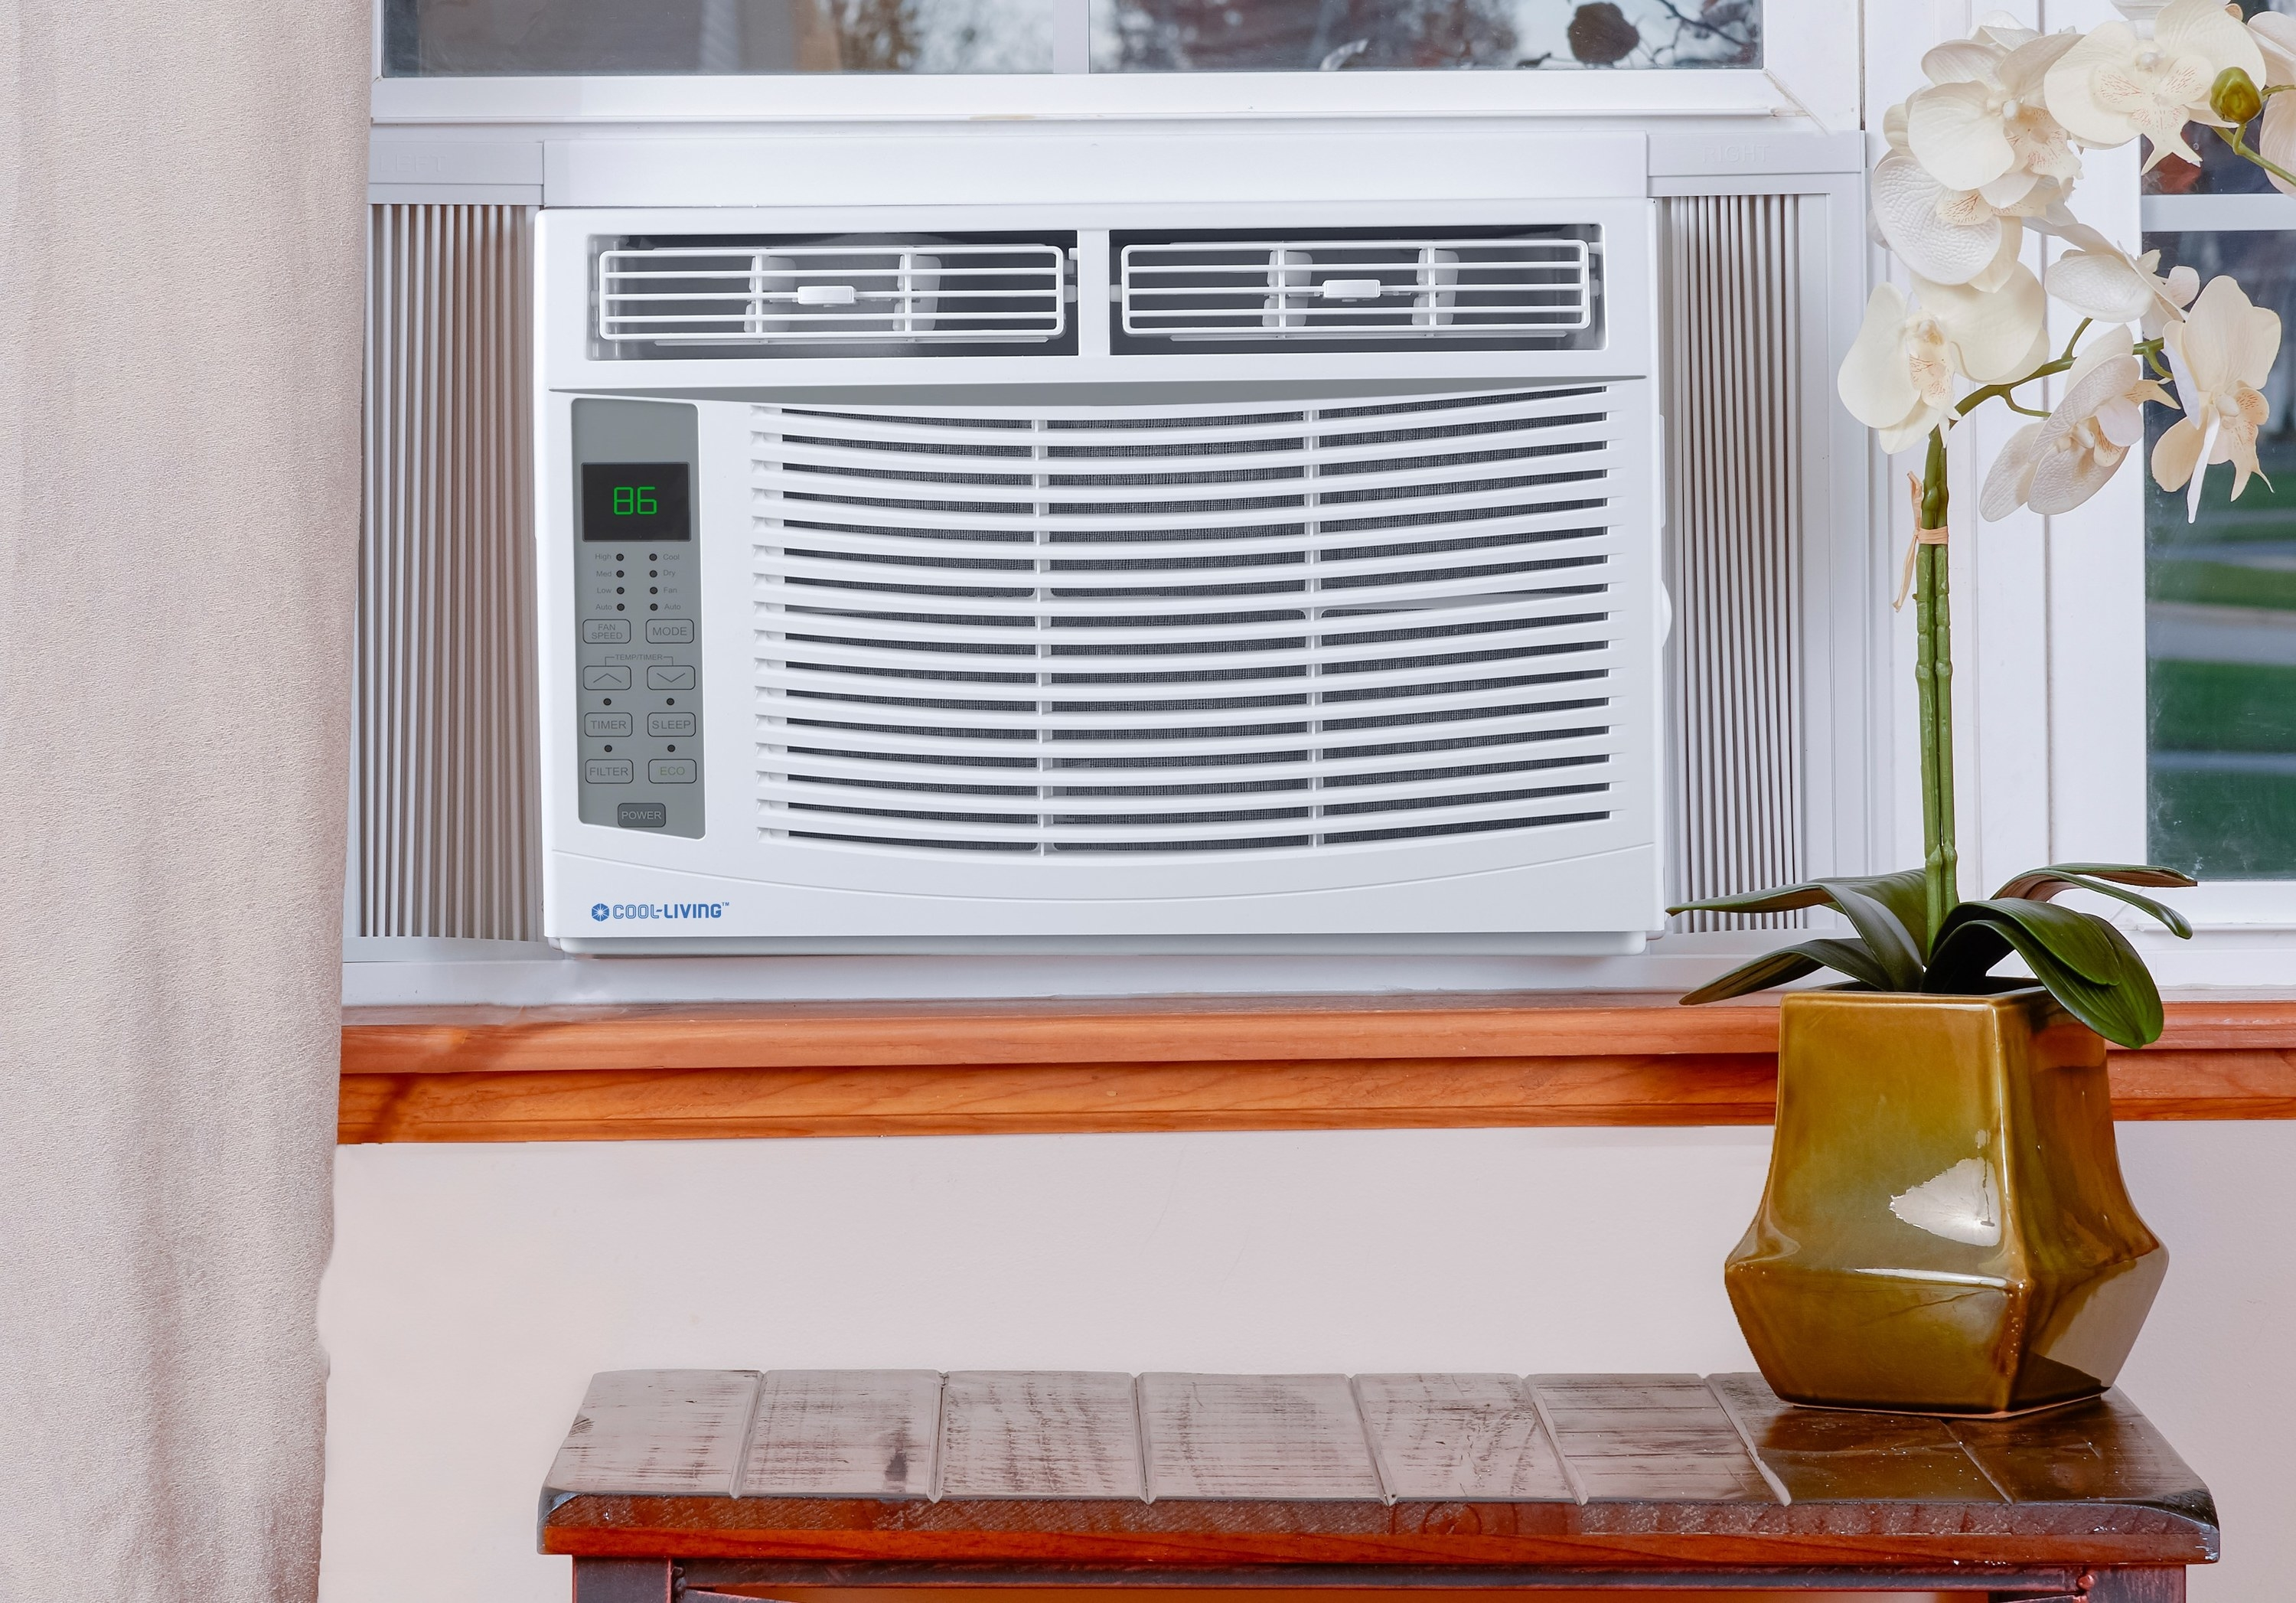 The A/C, installed in a window